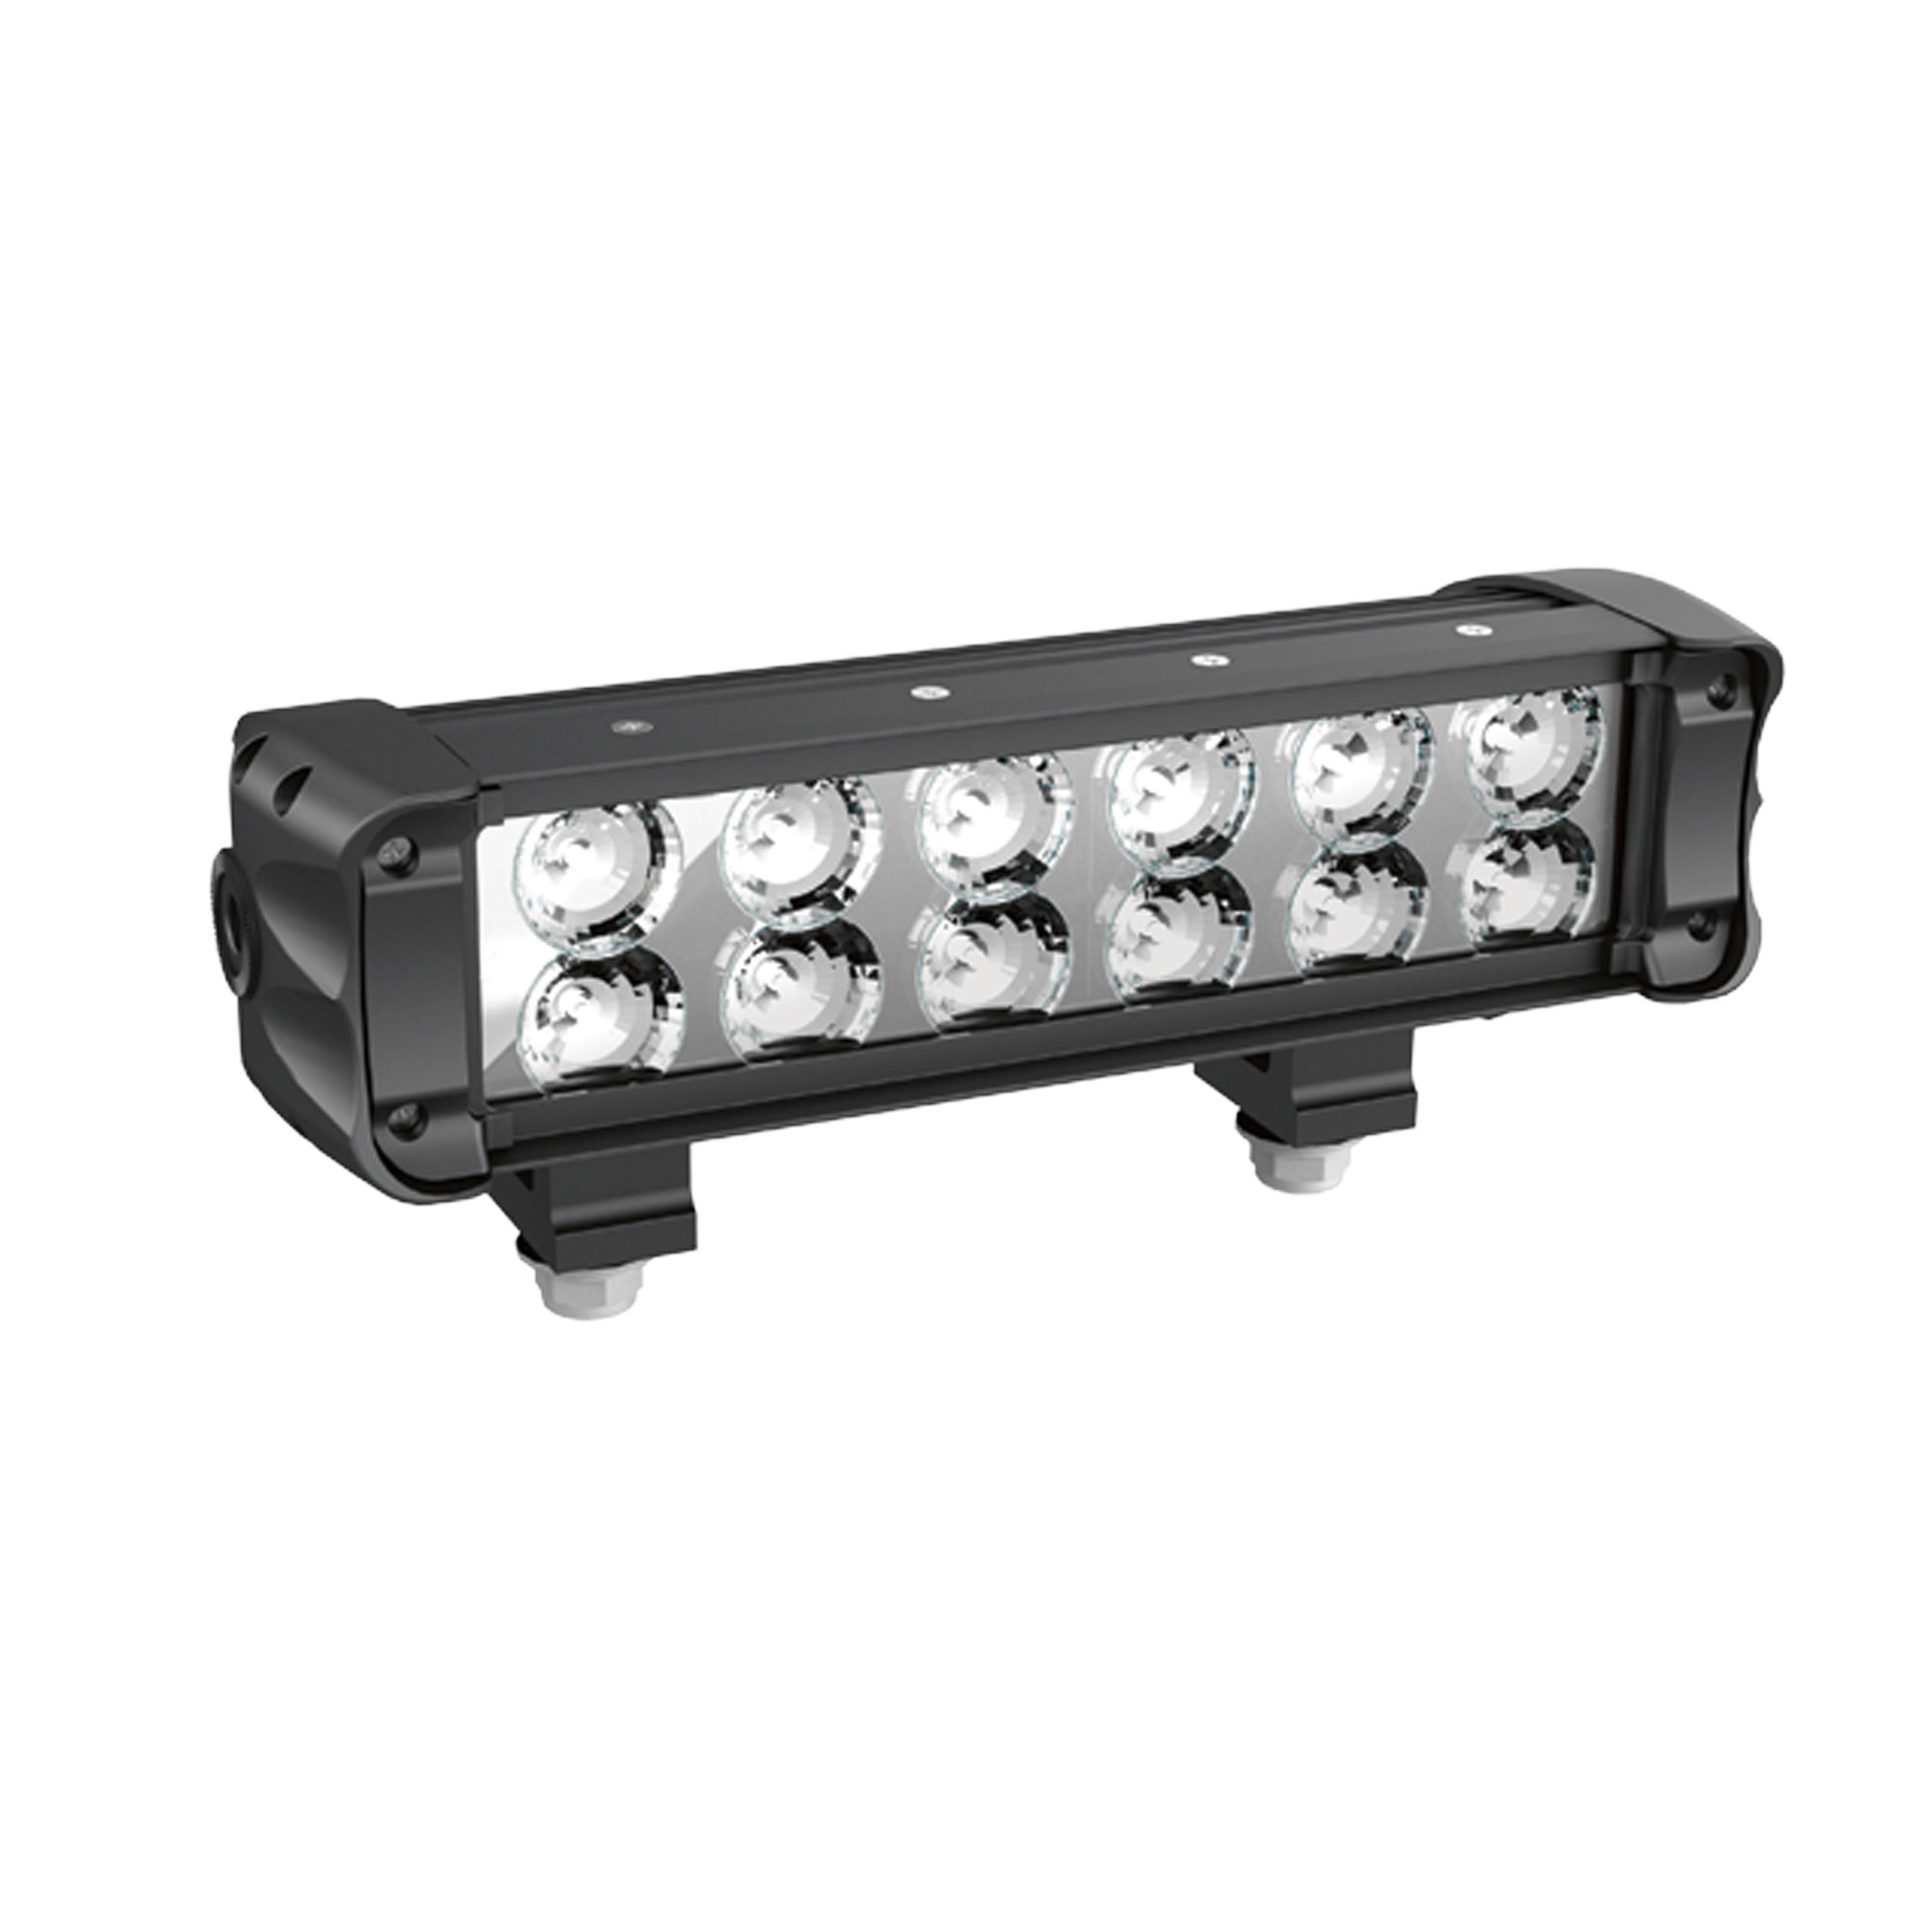 25CM DOUBLE STACKED LED LIGHT